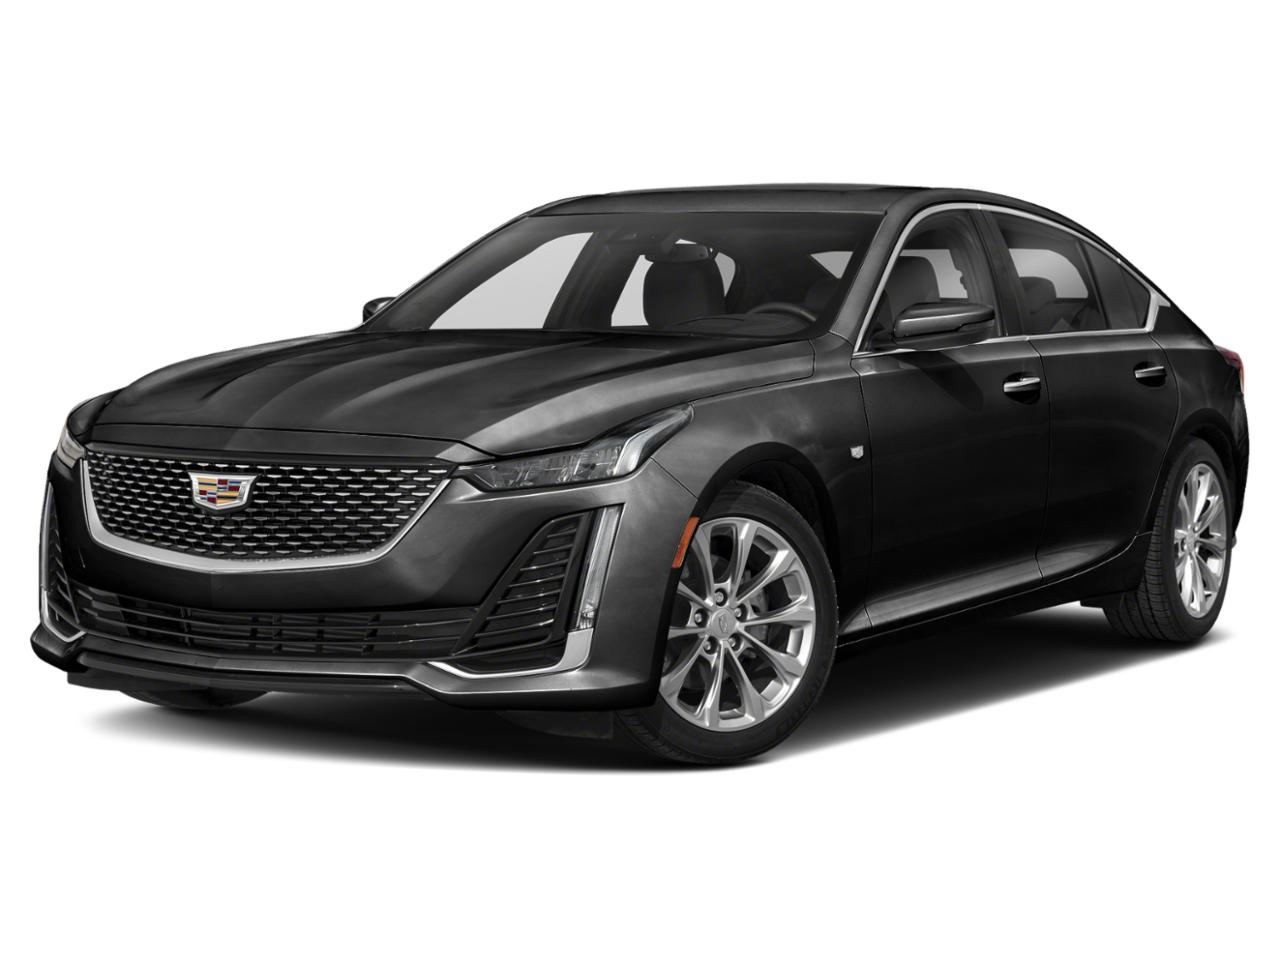 2021 Cadillac CT5 Vehicle Photo in Grapevine, TX 76051